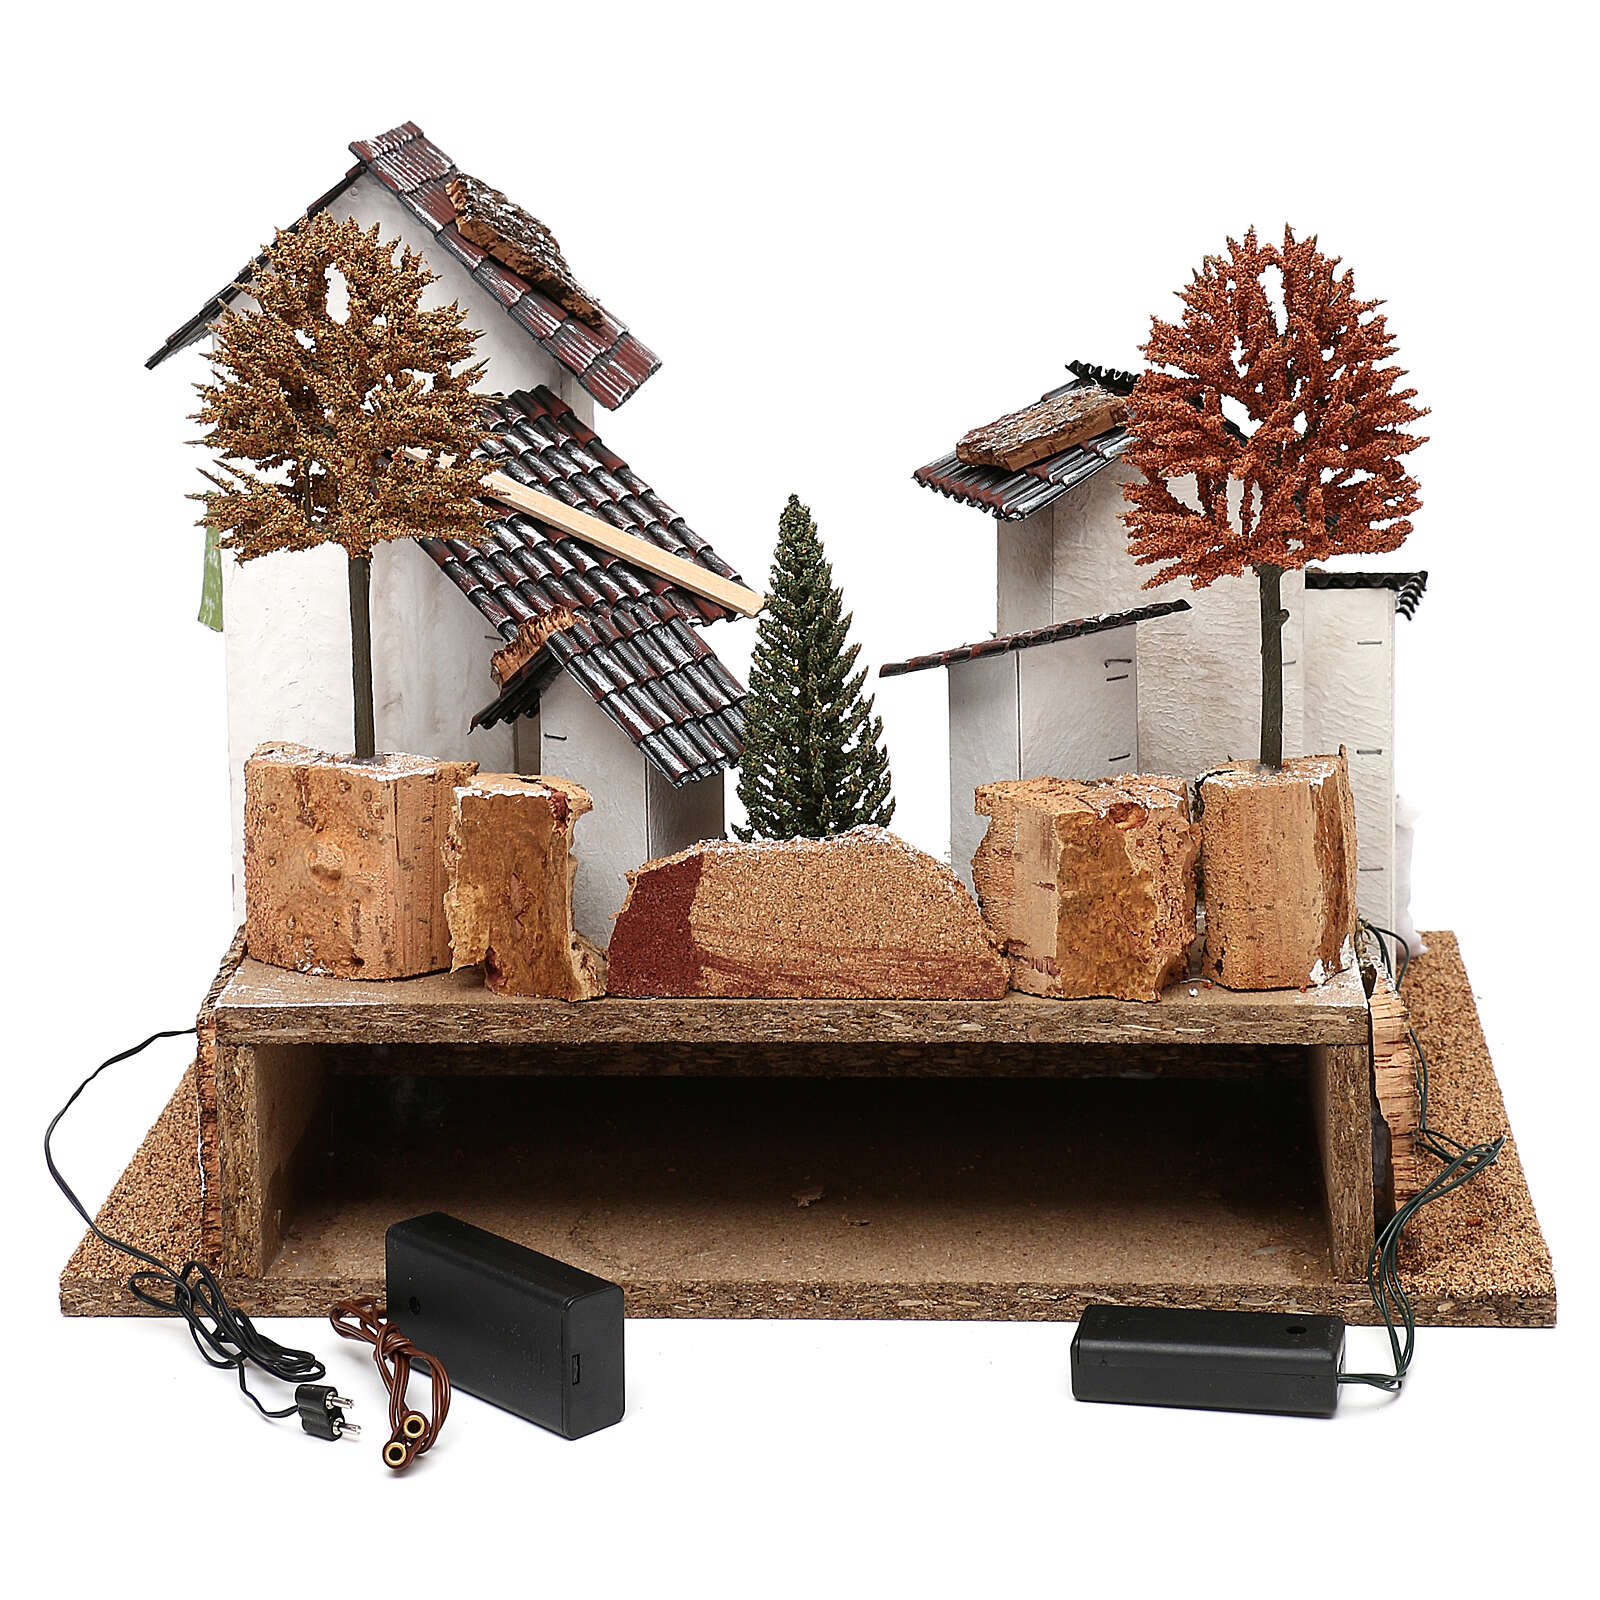 Village with staircase, oven and lights for nativity 8-9 cm 4